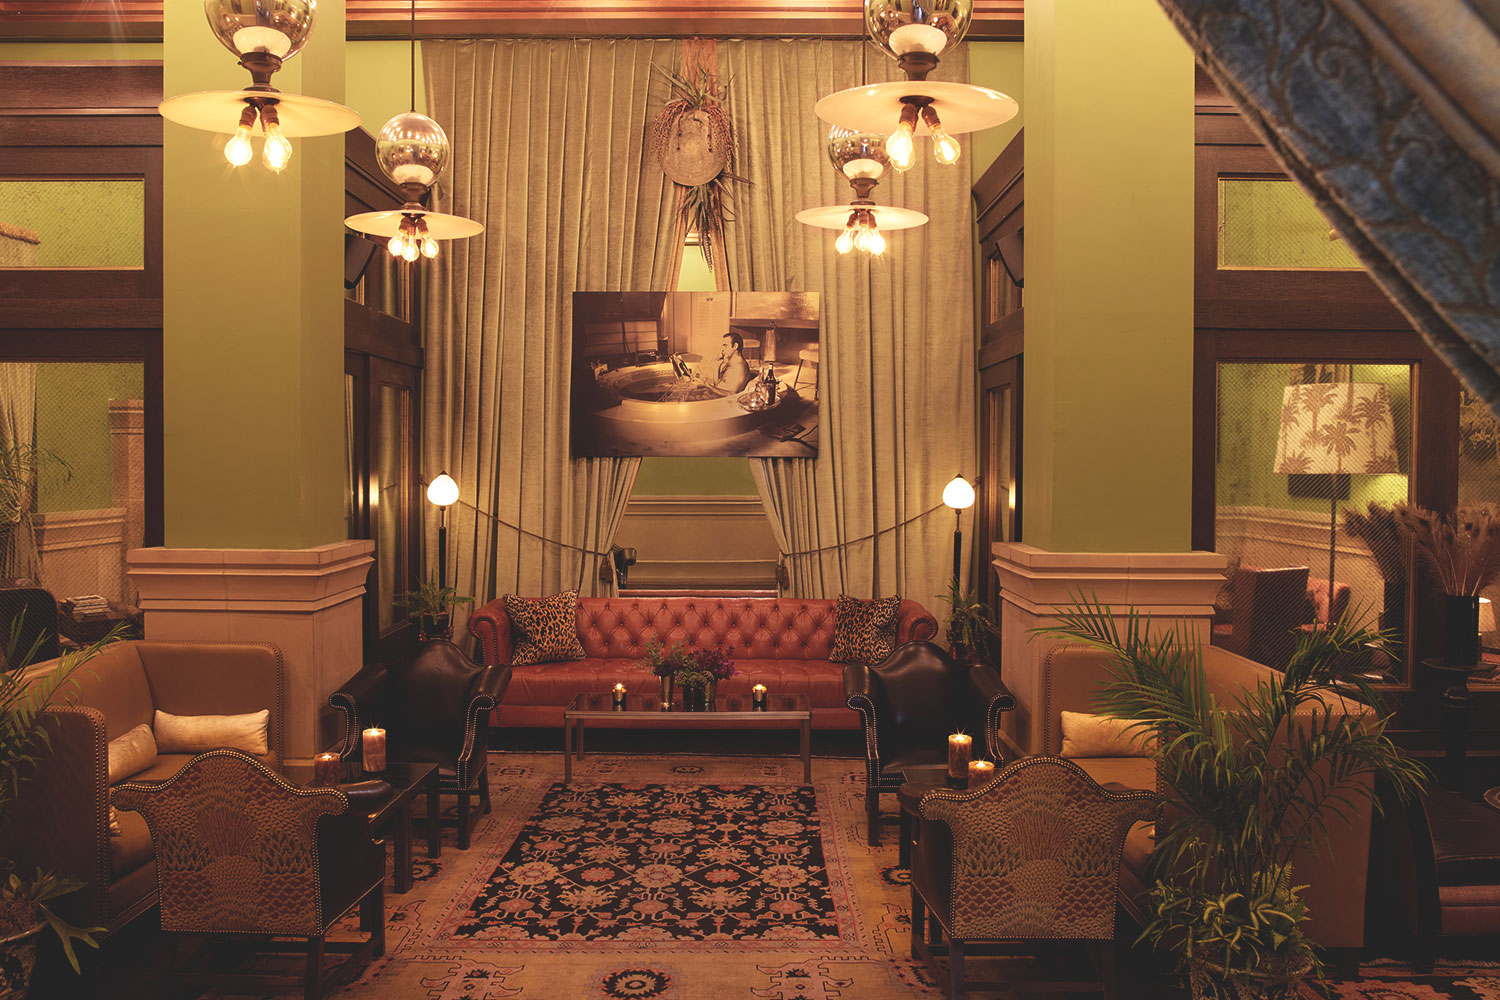 Club Room at Soho Grand Hotel | Club Room NYC | Soho Grand Hotel